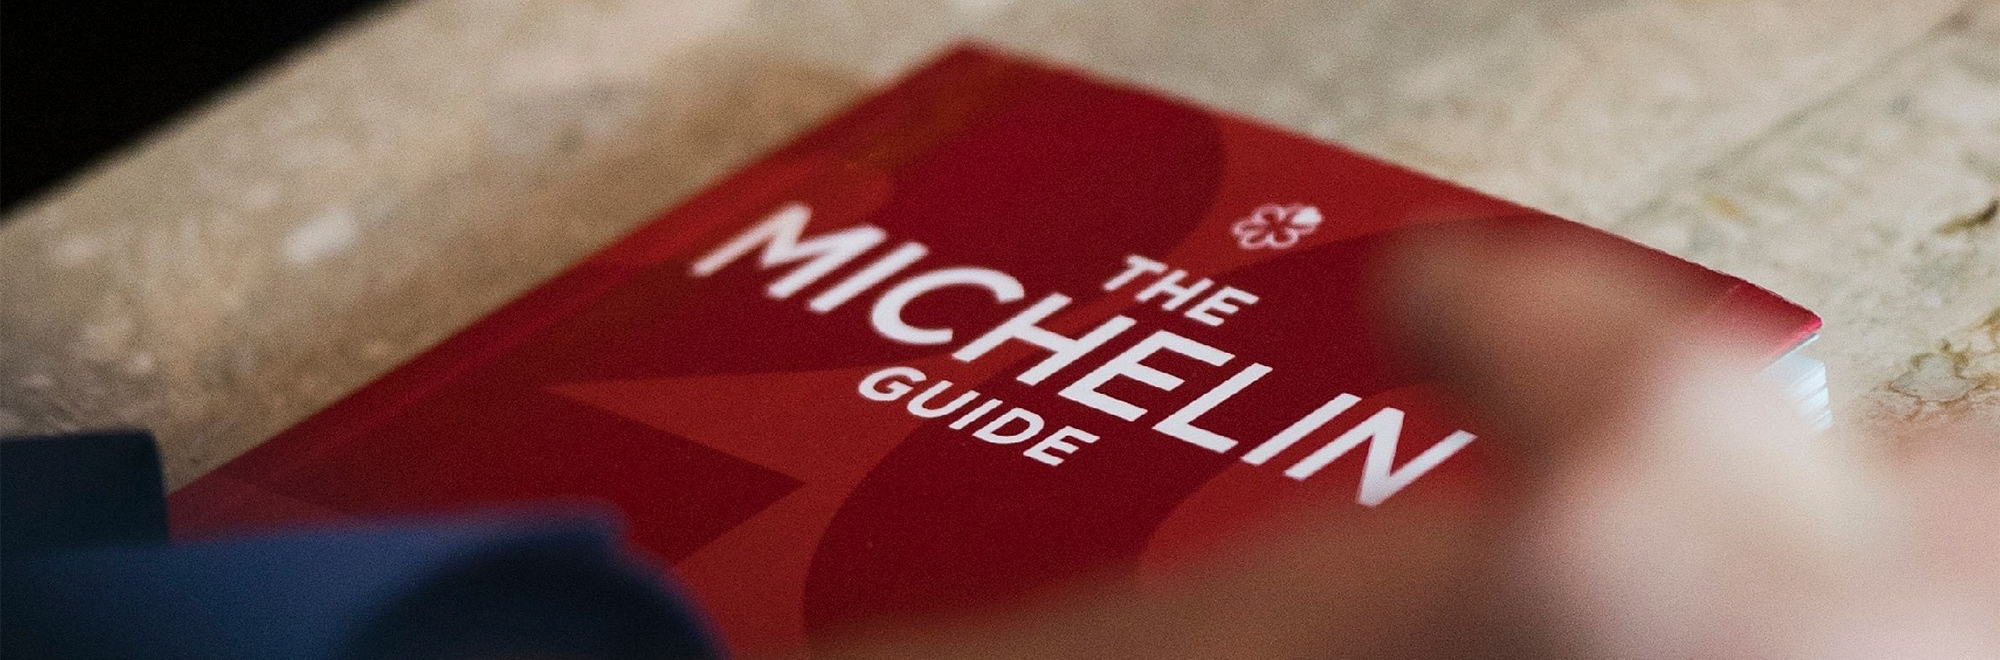 How the Michelin brothers used fine dining to create a world famous guide, born out of a need to boost their tyre business